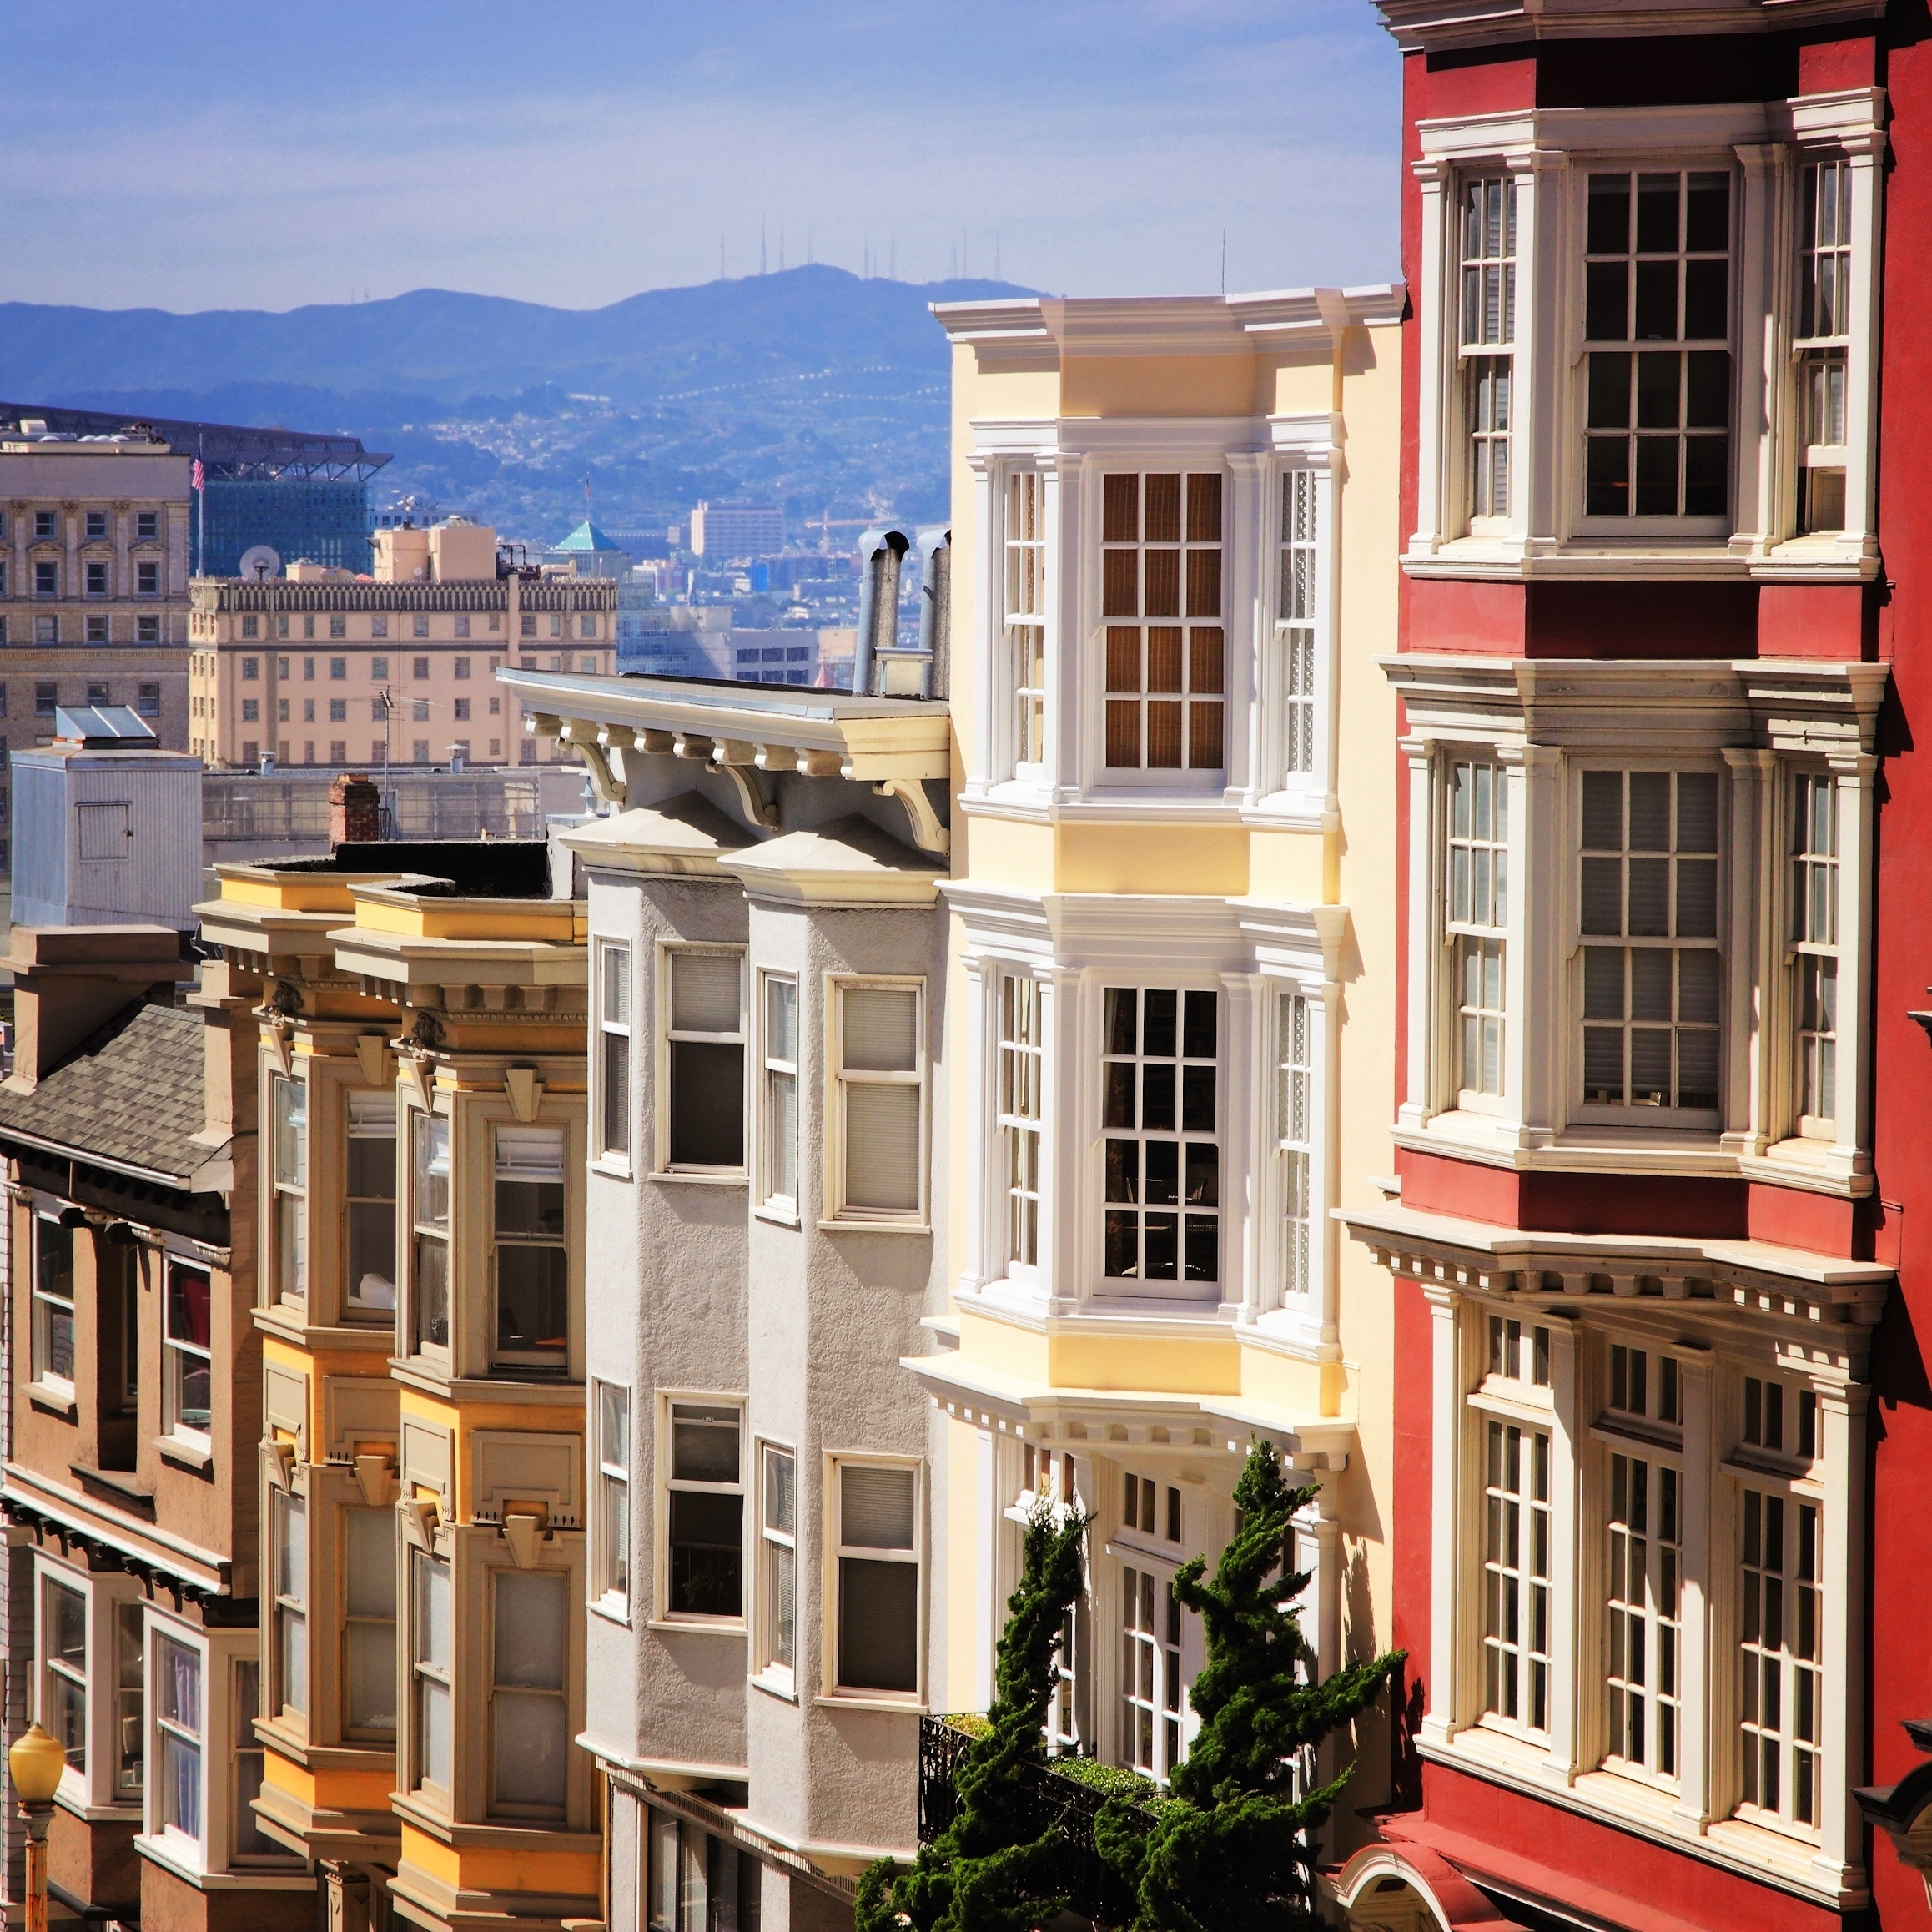 House Rent San Francisco: Caltrain Starts White House Petition For Transit Funding